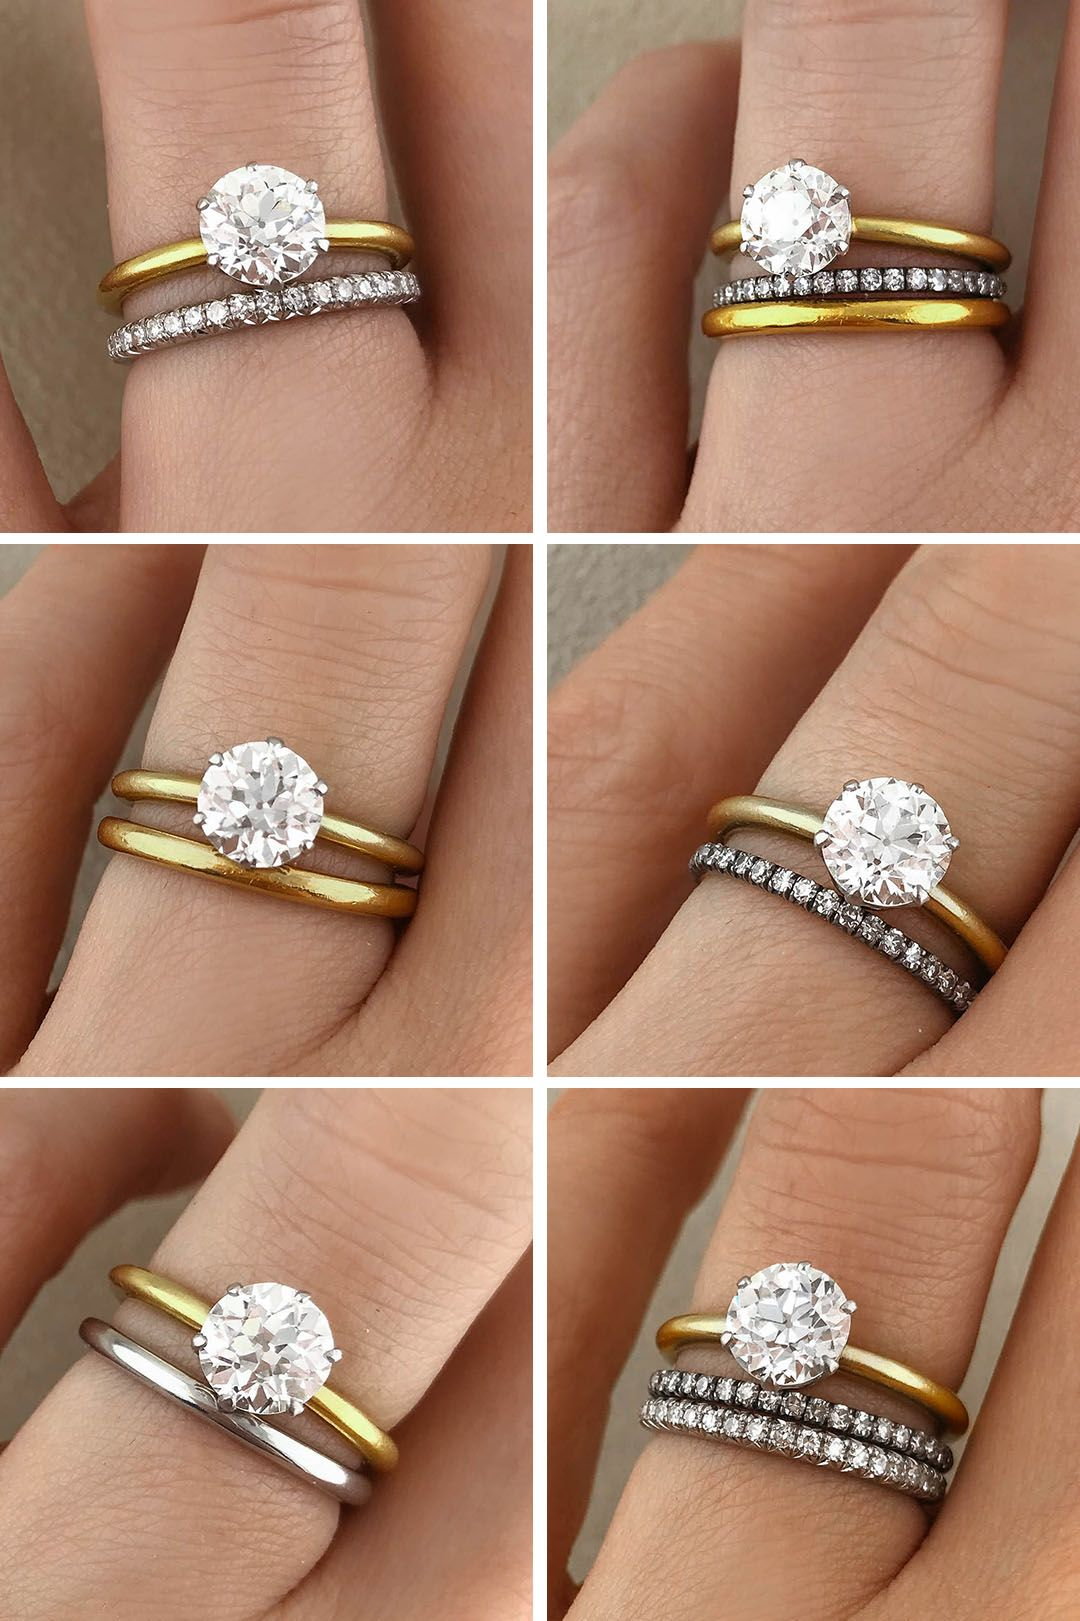 Iconic 1890s Vintage Tiffany & Co. Solitaire Engagement